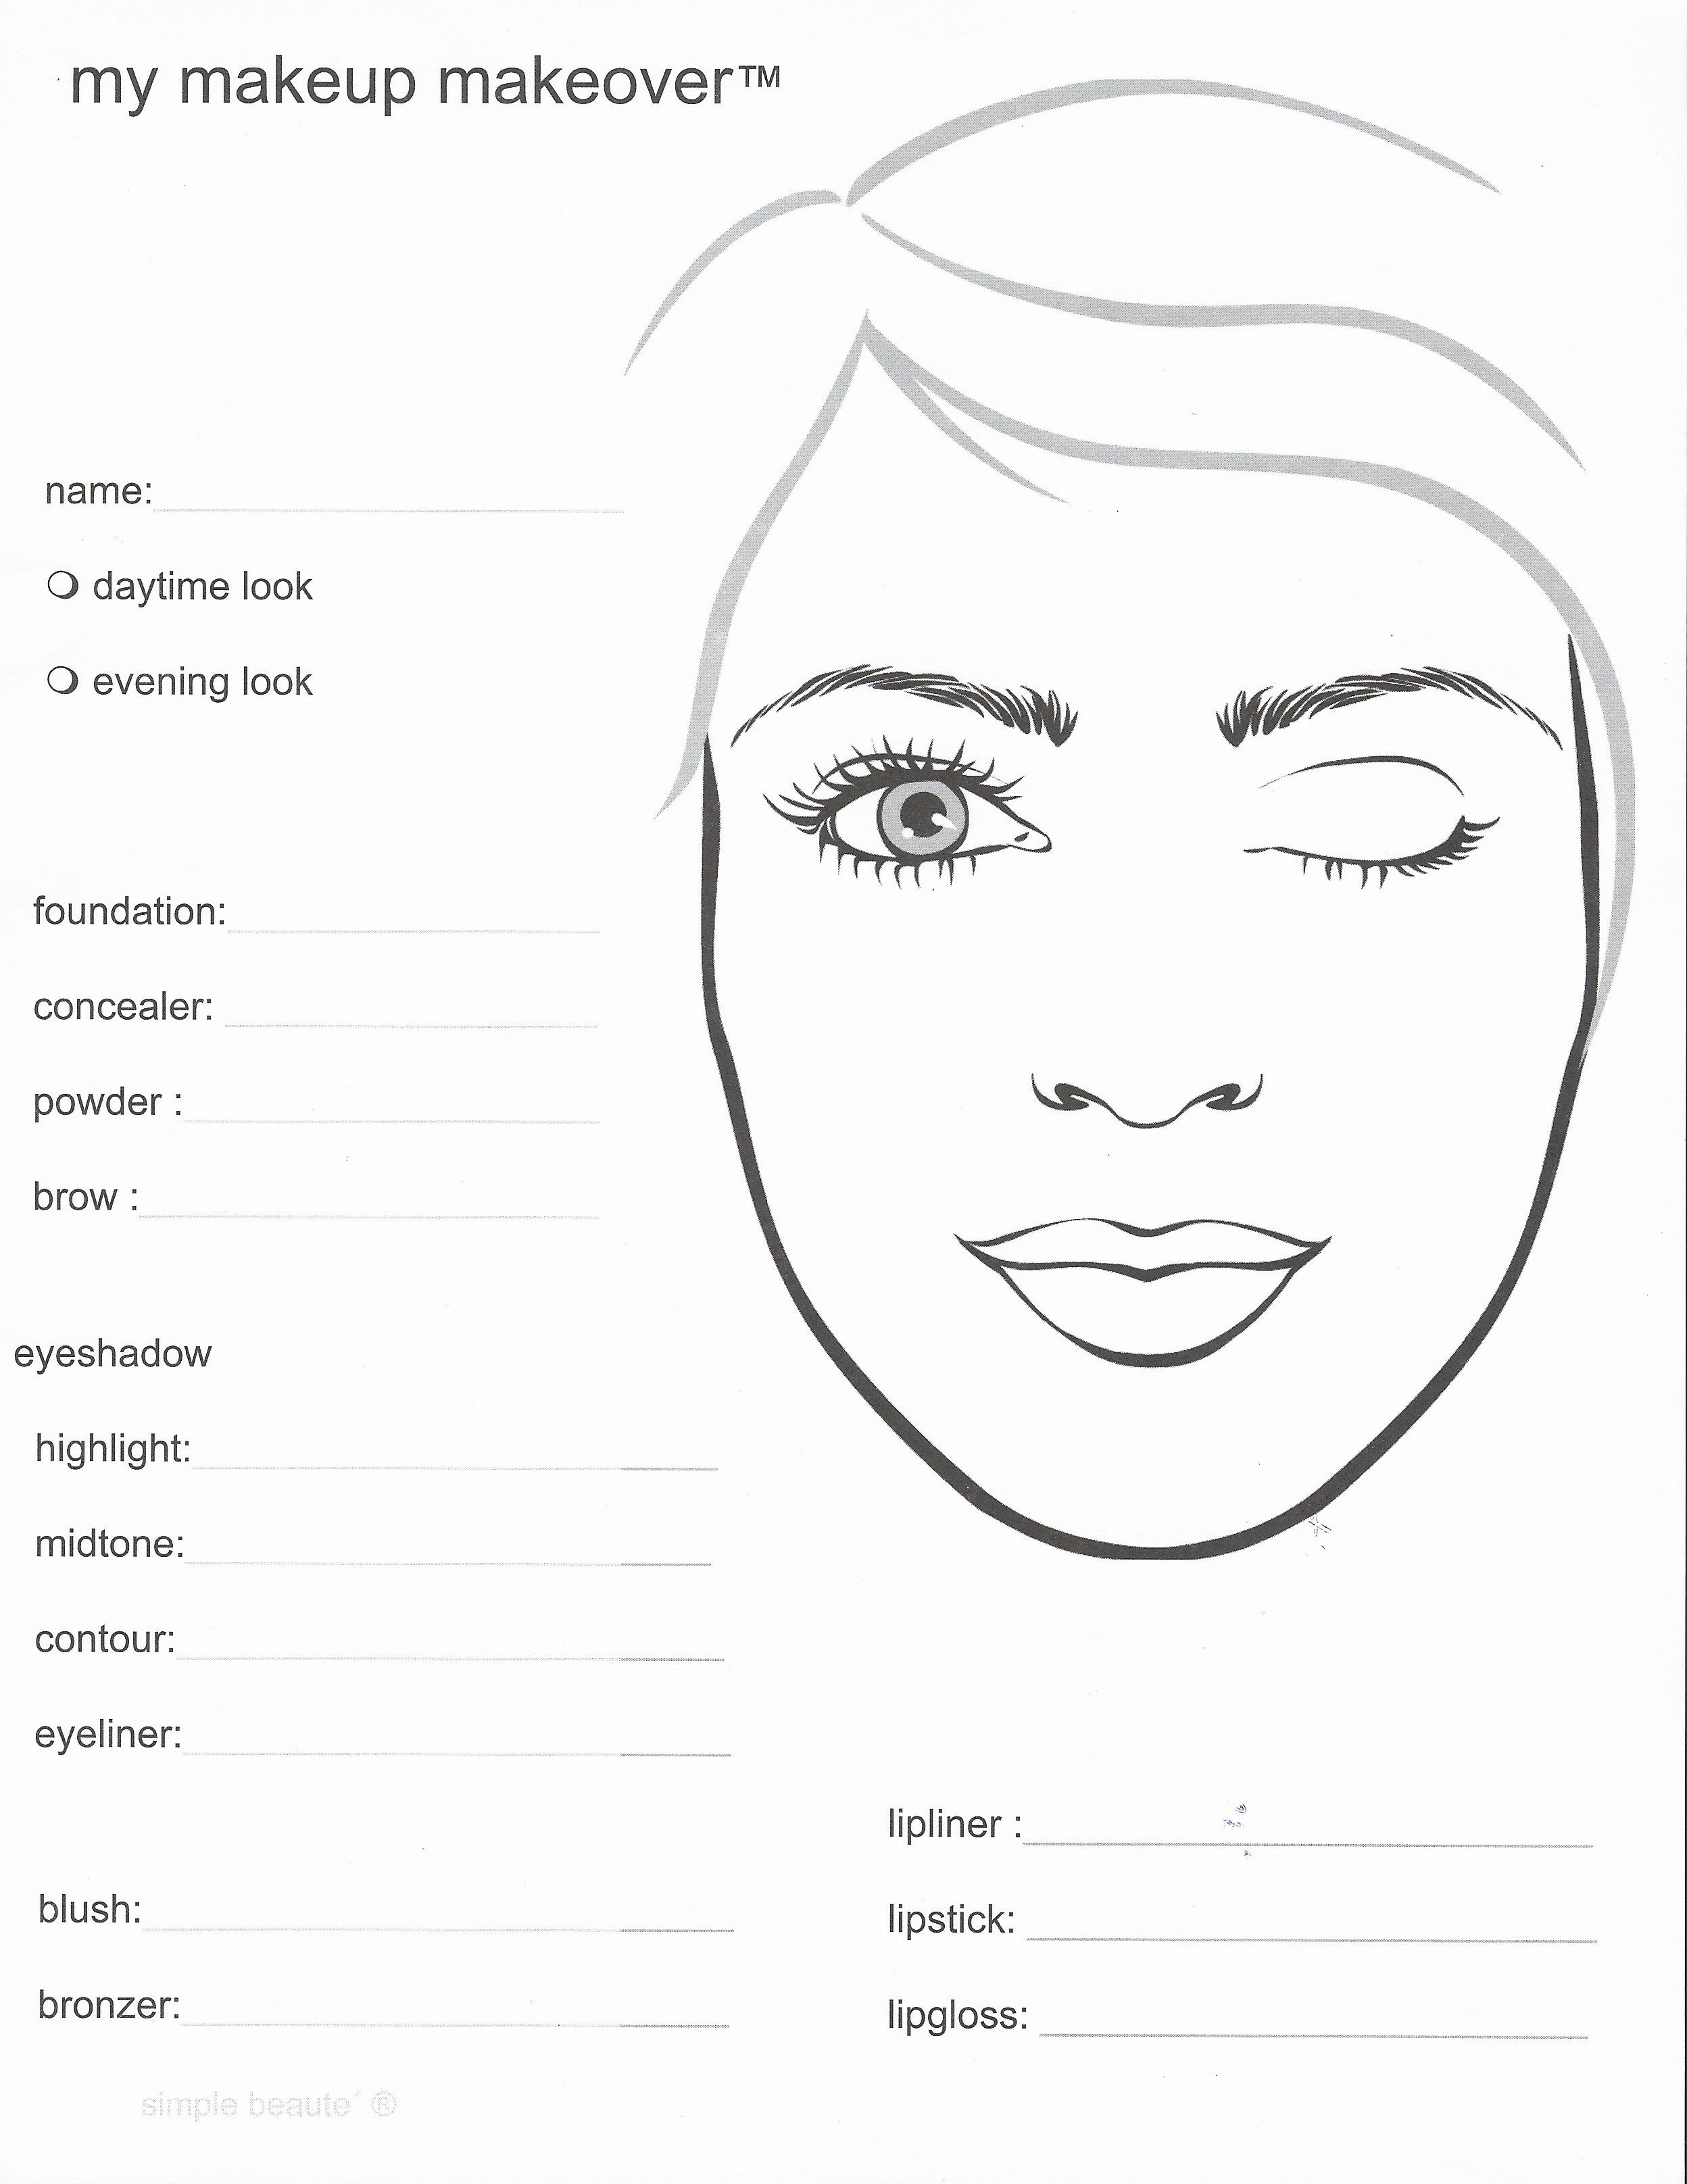 graphic about Makeup Face Template Printable identify Mary Kay Make-up Confront Sheets Mary Kay inside 2019 Mary kay